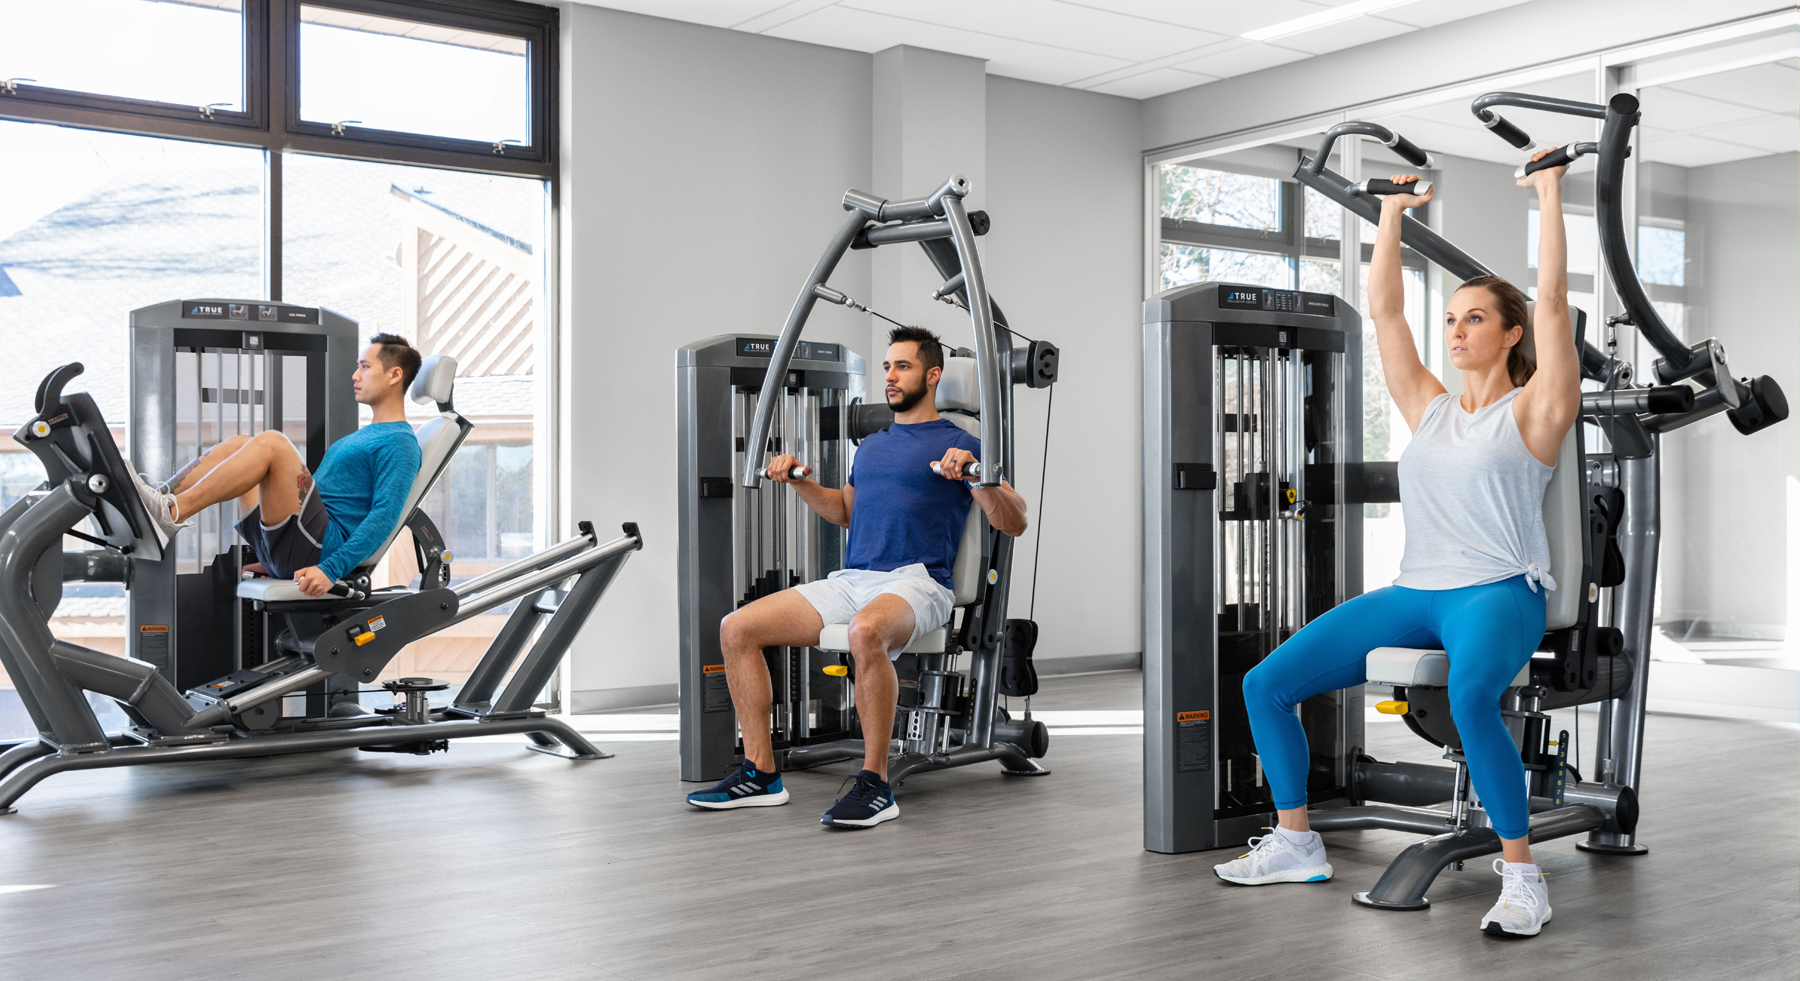 Commercial Strength Equipment For Your Facilities.